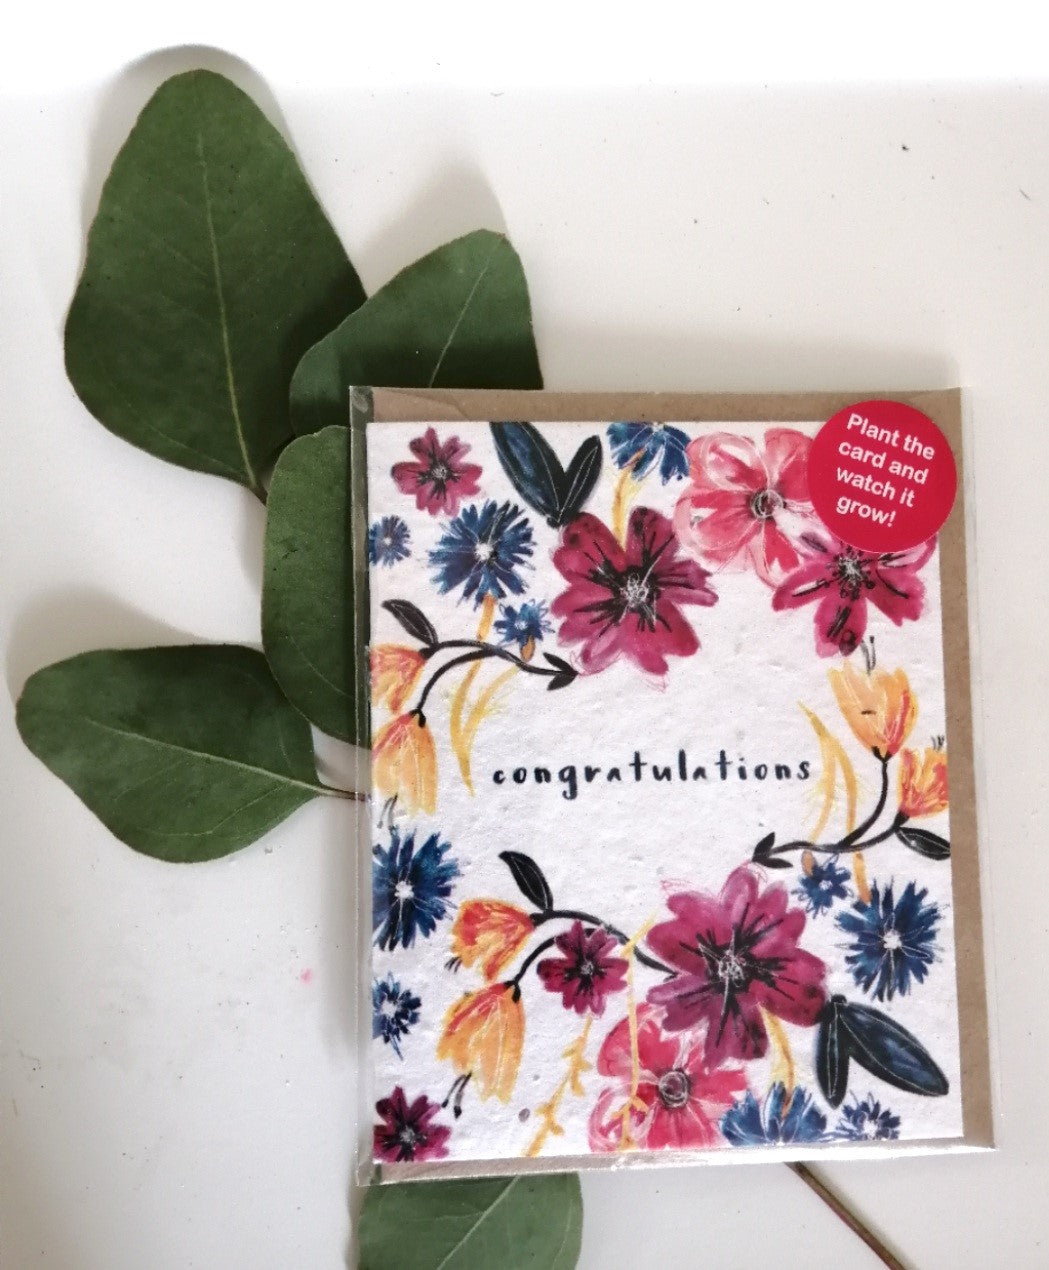 'Congratulations' seed card